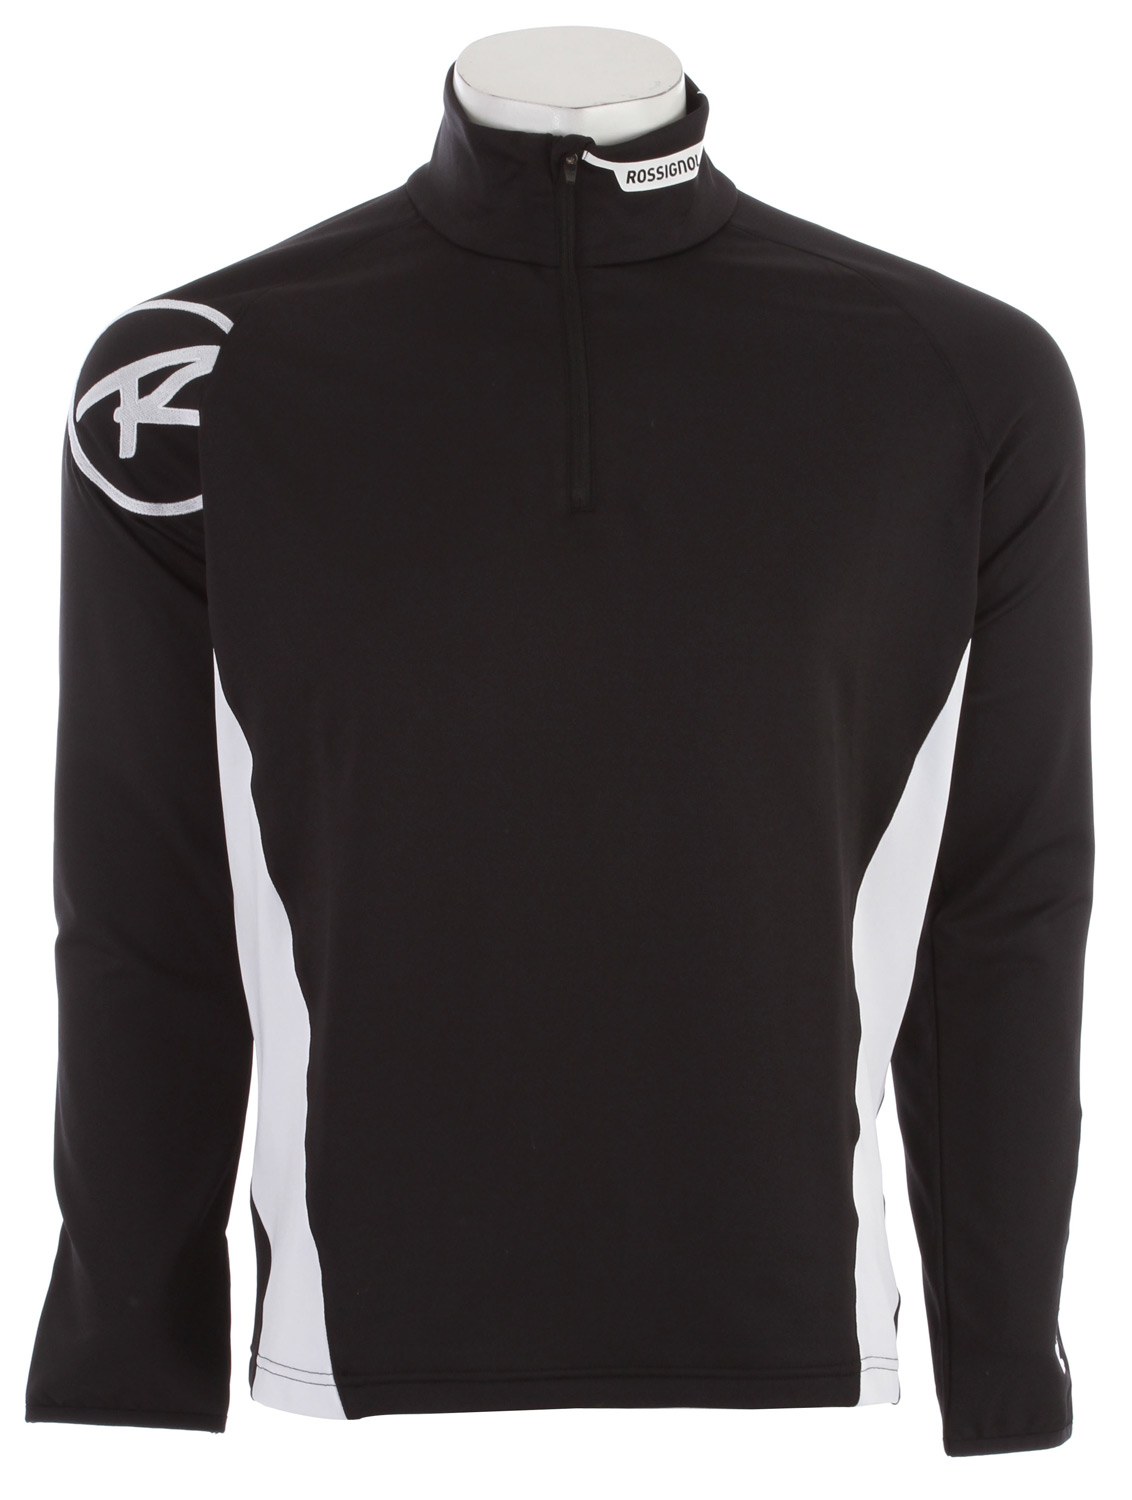 Key Features of the Rossignol Warm Stretch 1/2 Zip Baselayer Top: Weave: Warm stretch Content: 93% Polyester - 7% Lycra Weight: 230 g/m2 Finish: Brushed Inside Accessories: 1/2 zip - Laser branding Center back length: 73cm - 28,75 inches - $80.00